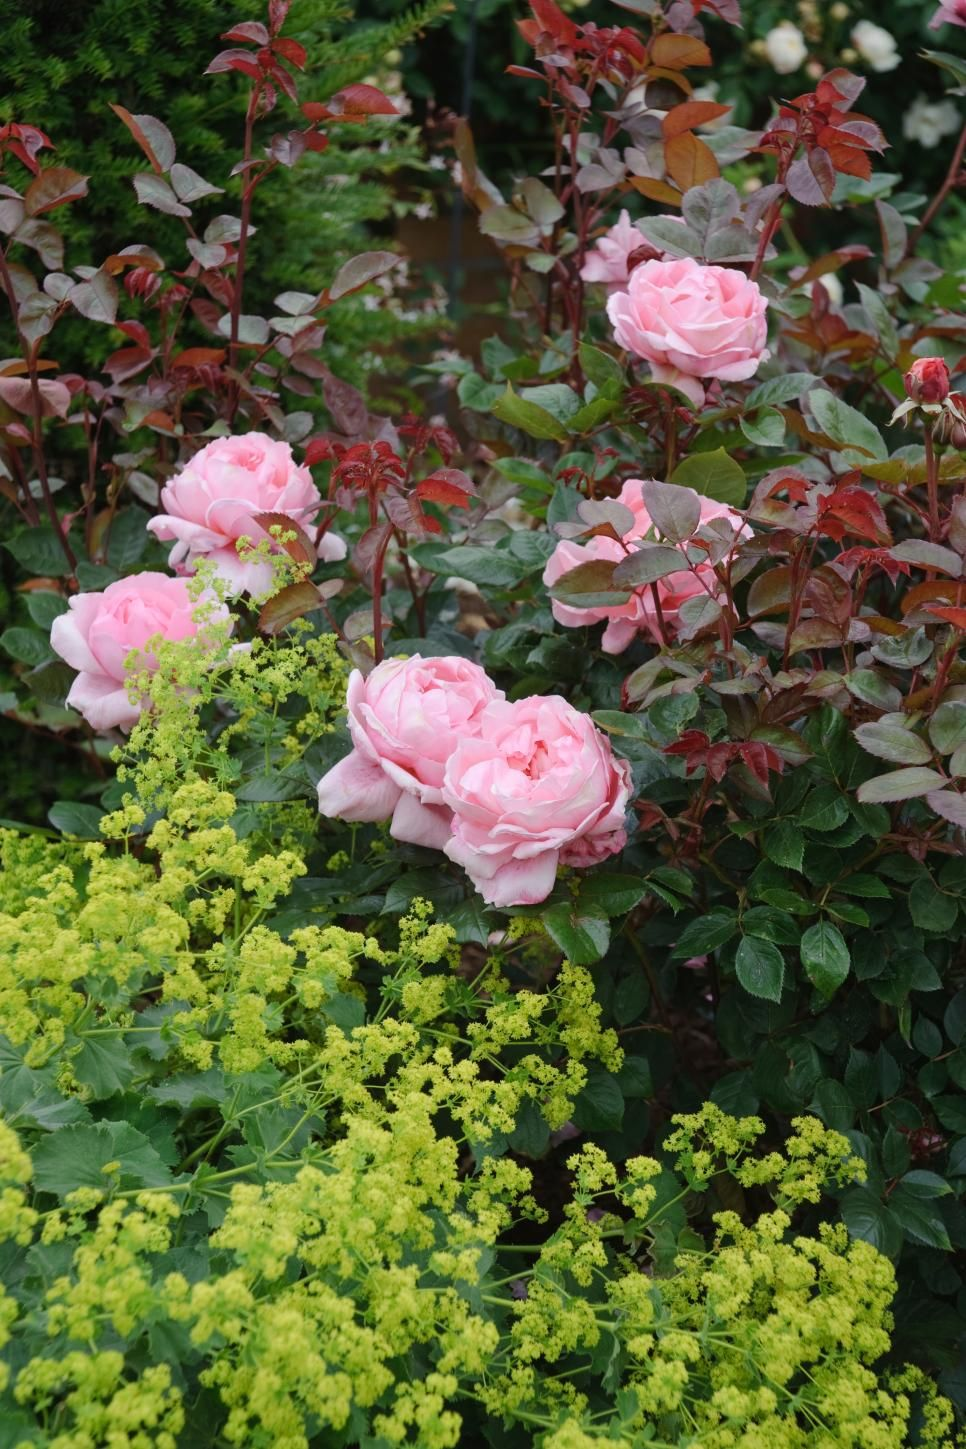 The most popular english roses in america landscaping pinterest british rose breeder david austin creates some of the most beautiful flowers in the world find out which roses are most in demand in american gardens izmirmasajfo